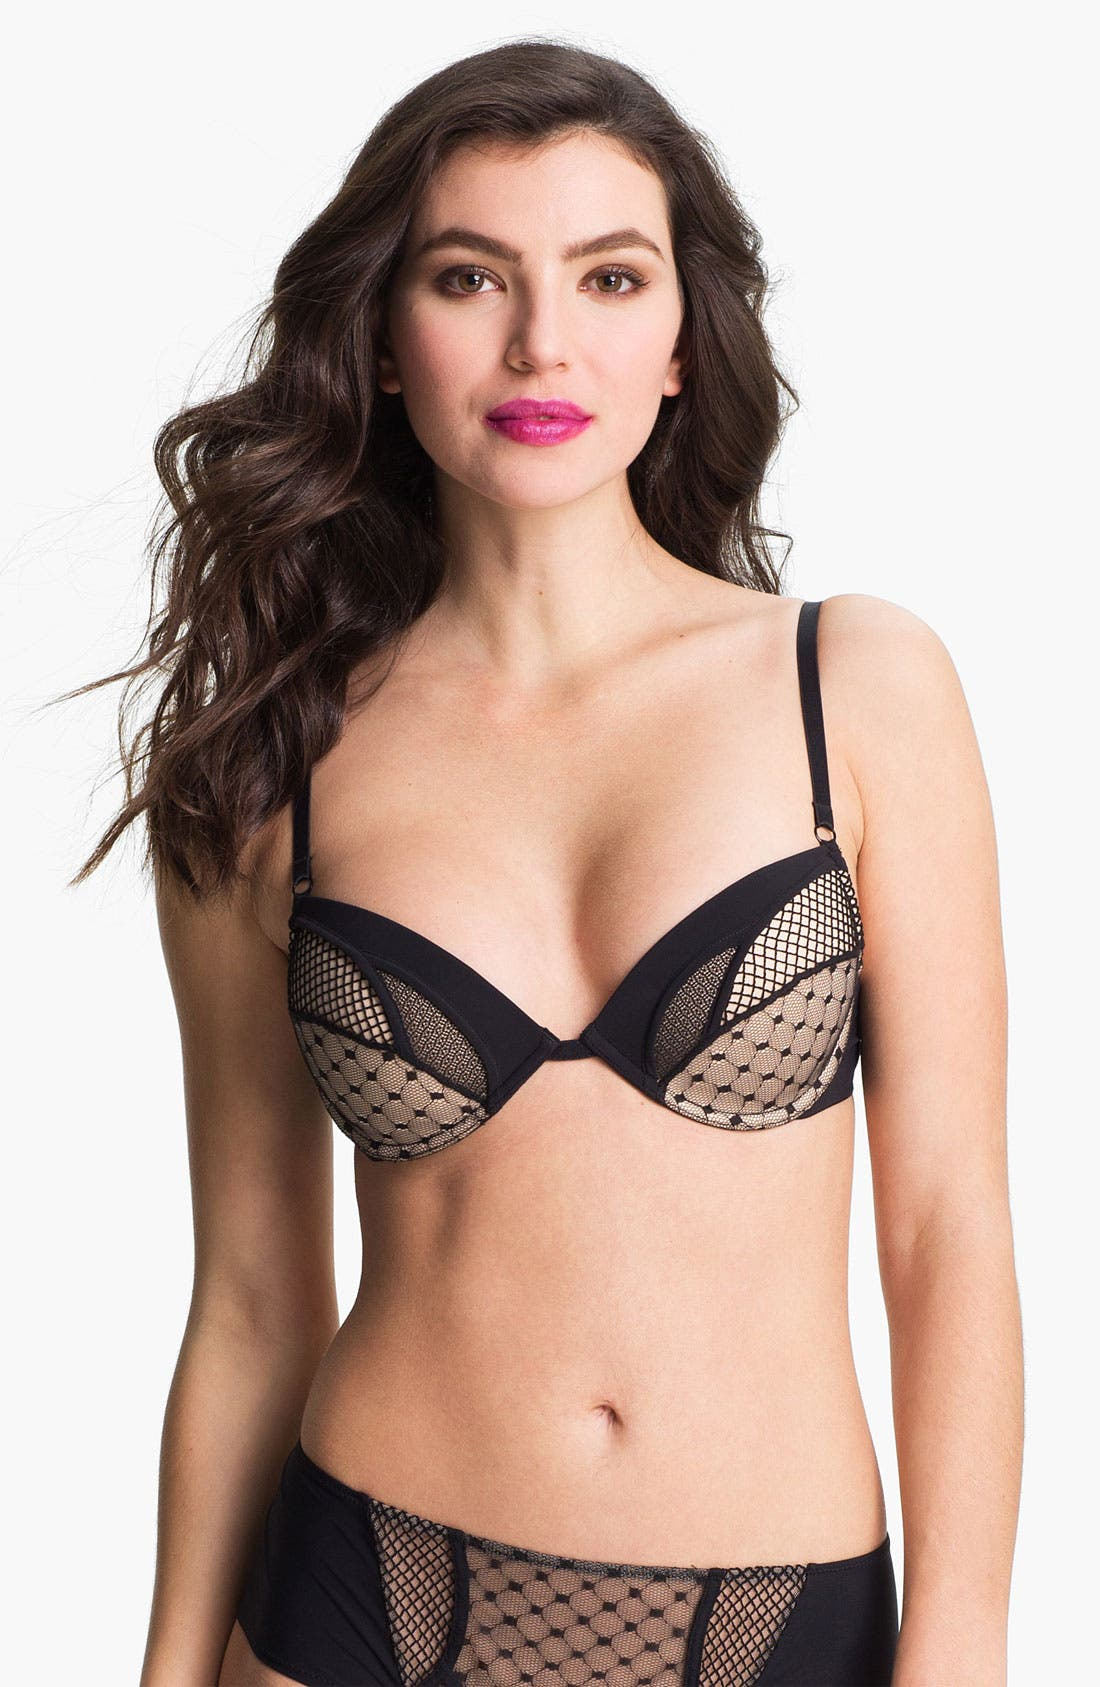 Alternate Image 1 Selected - La Perla 'Obsession of Love' Molded Underwire Push Up Bra